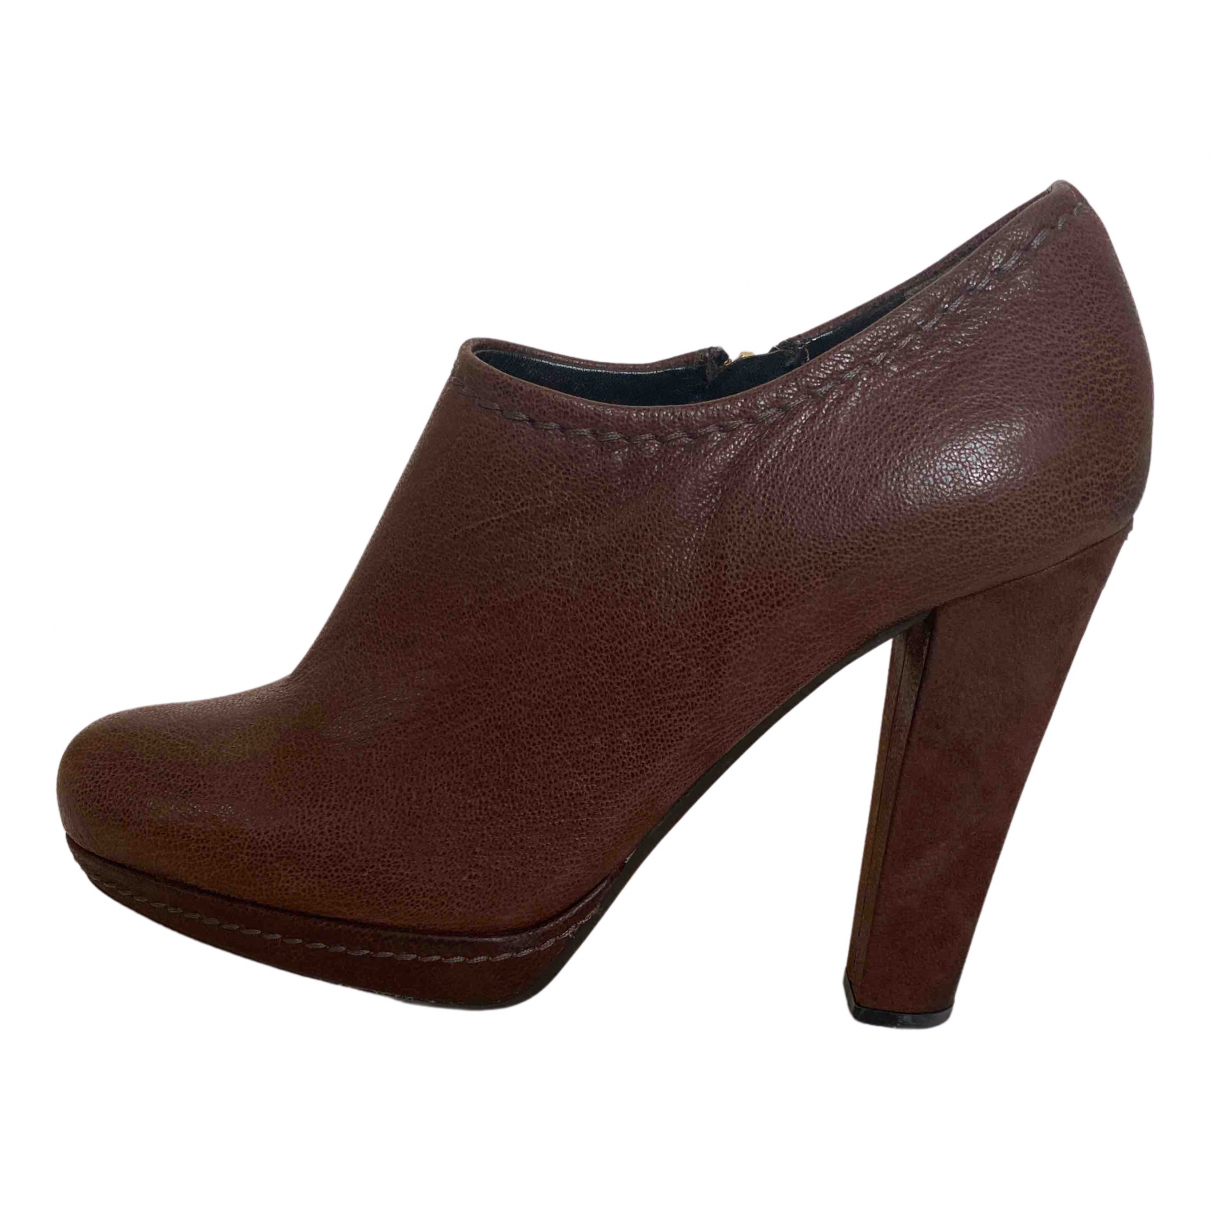 Carshoe N Brown Leather Heels for Women 38 IT